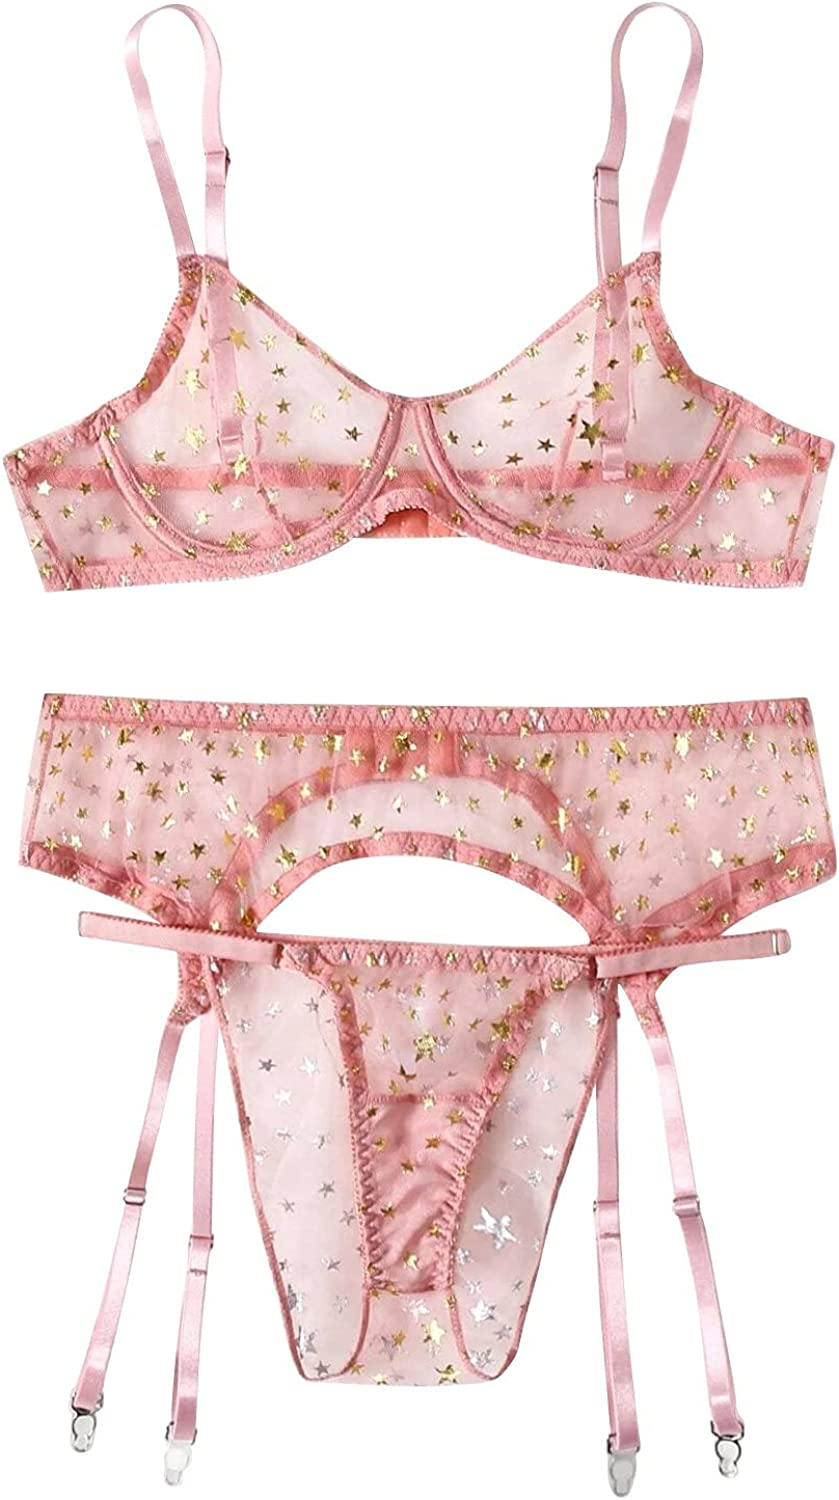 Lovor Women's Embroidered Floral Sheer Mesh Underwire Bra and Panty Lingerie Set Scalloped Trim Wireless Panty Lingerie Set